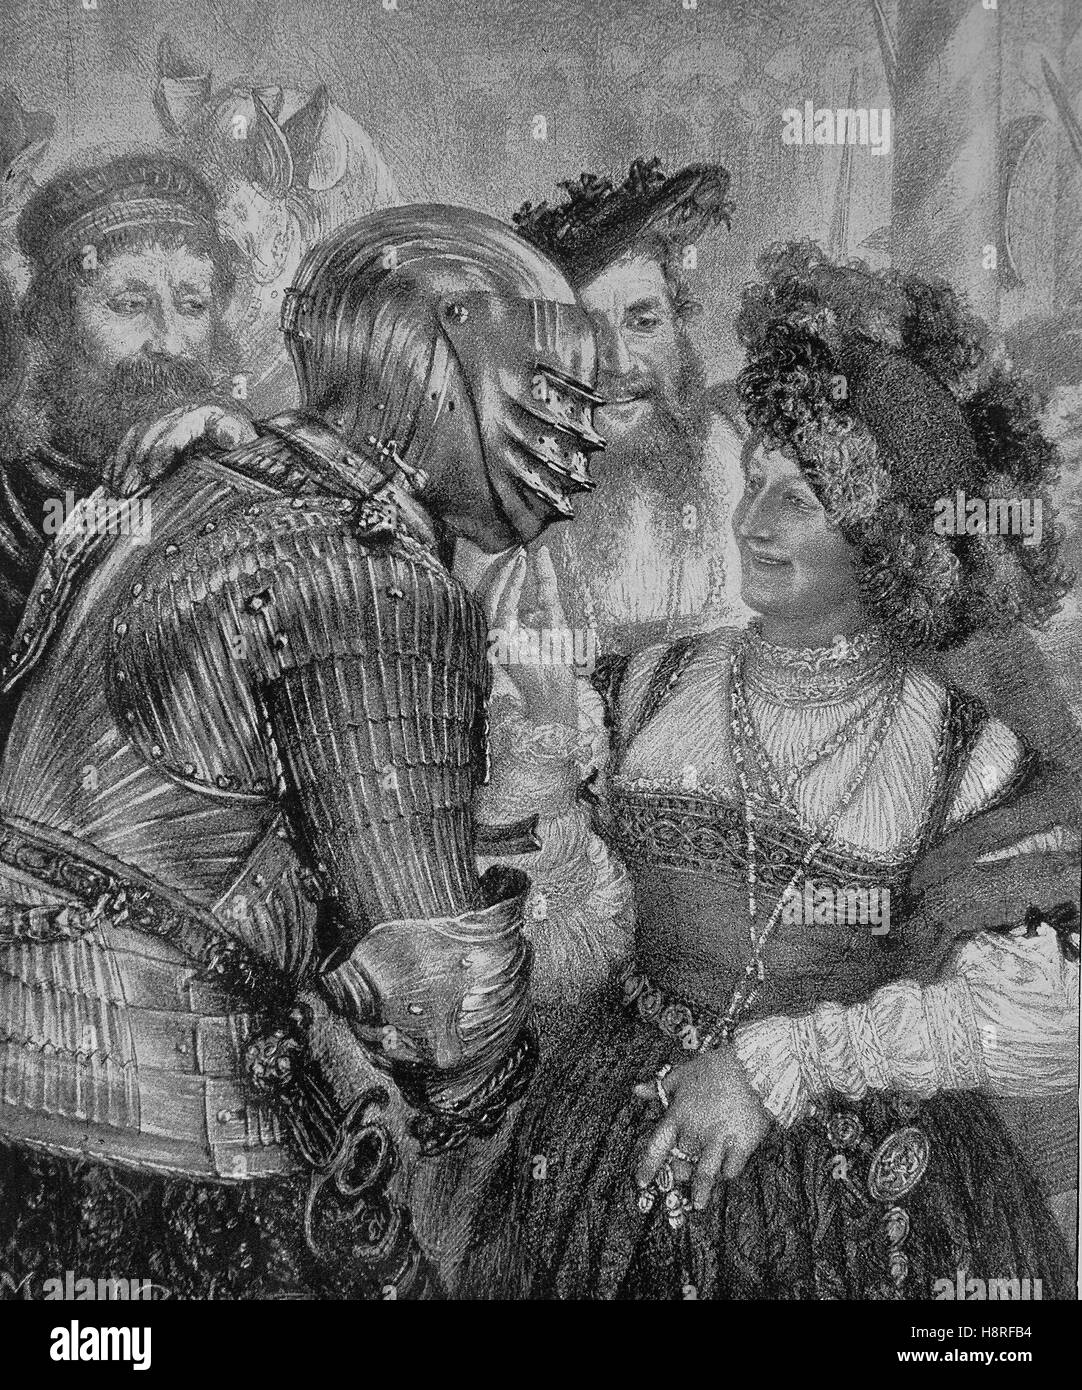 Knight in armor at a dancing evening in the castle, Middle Ages - Stock Image